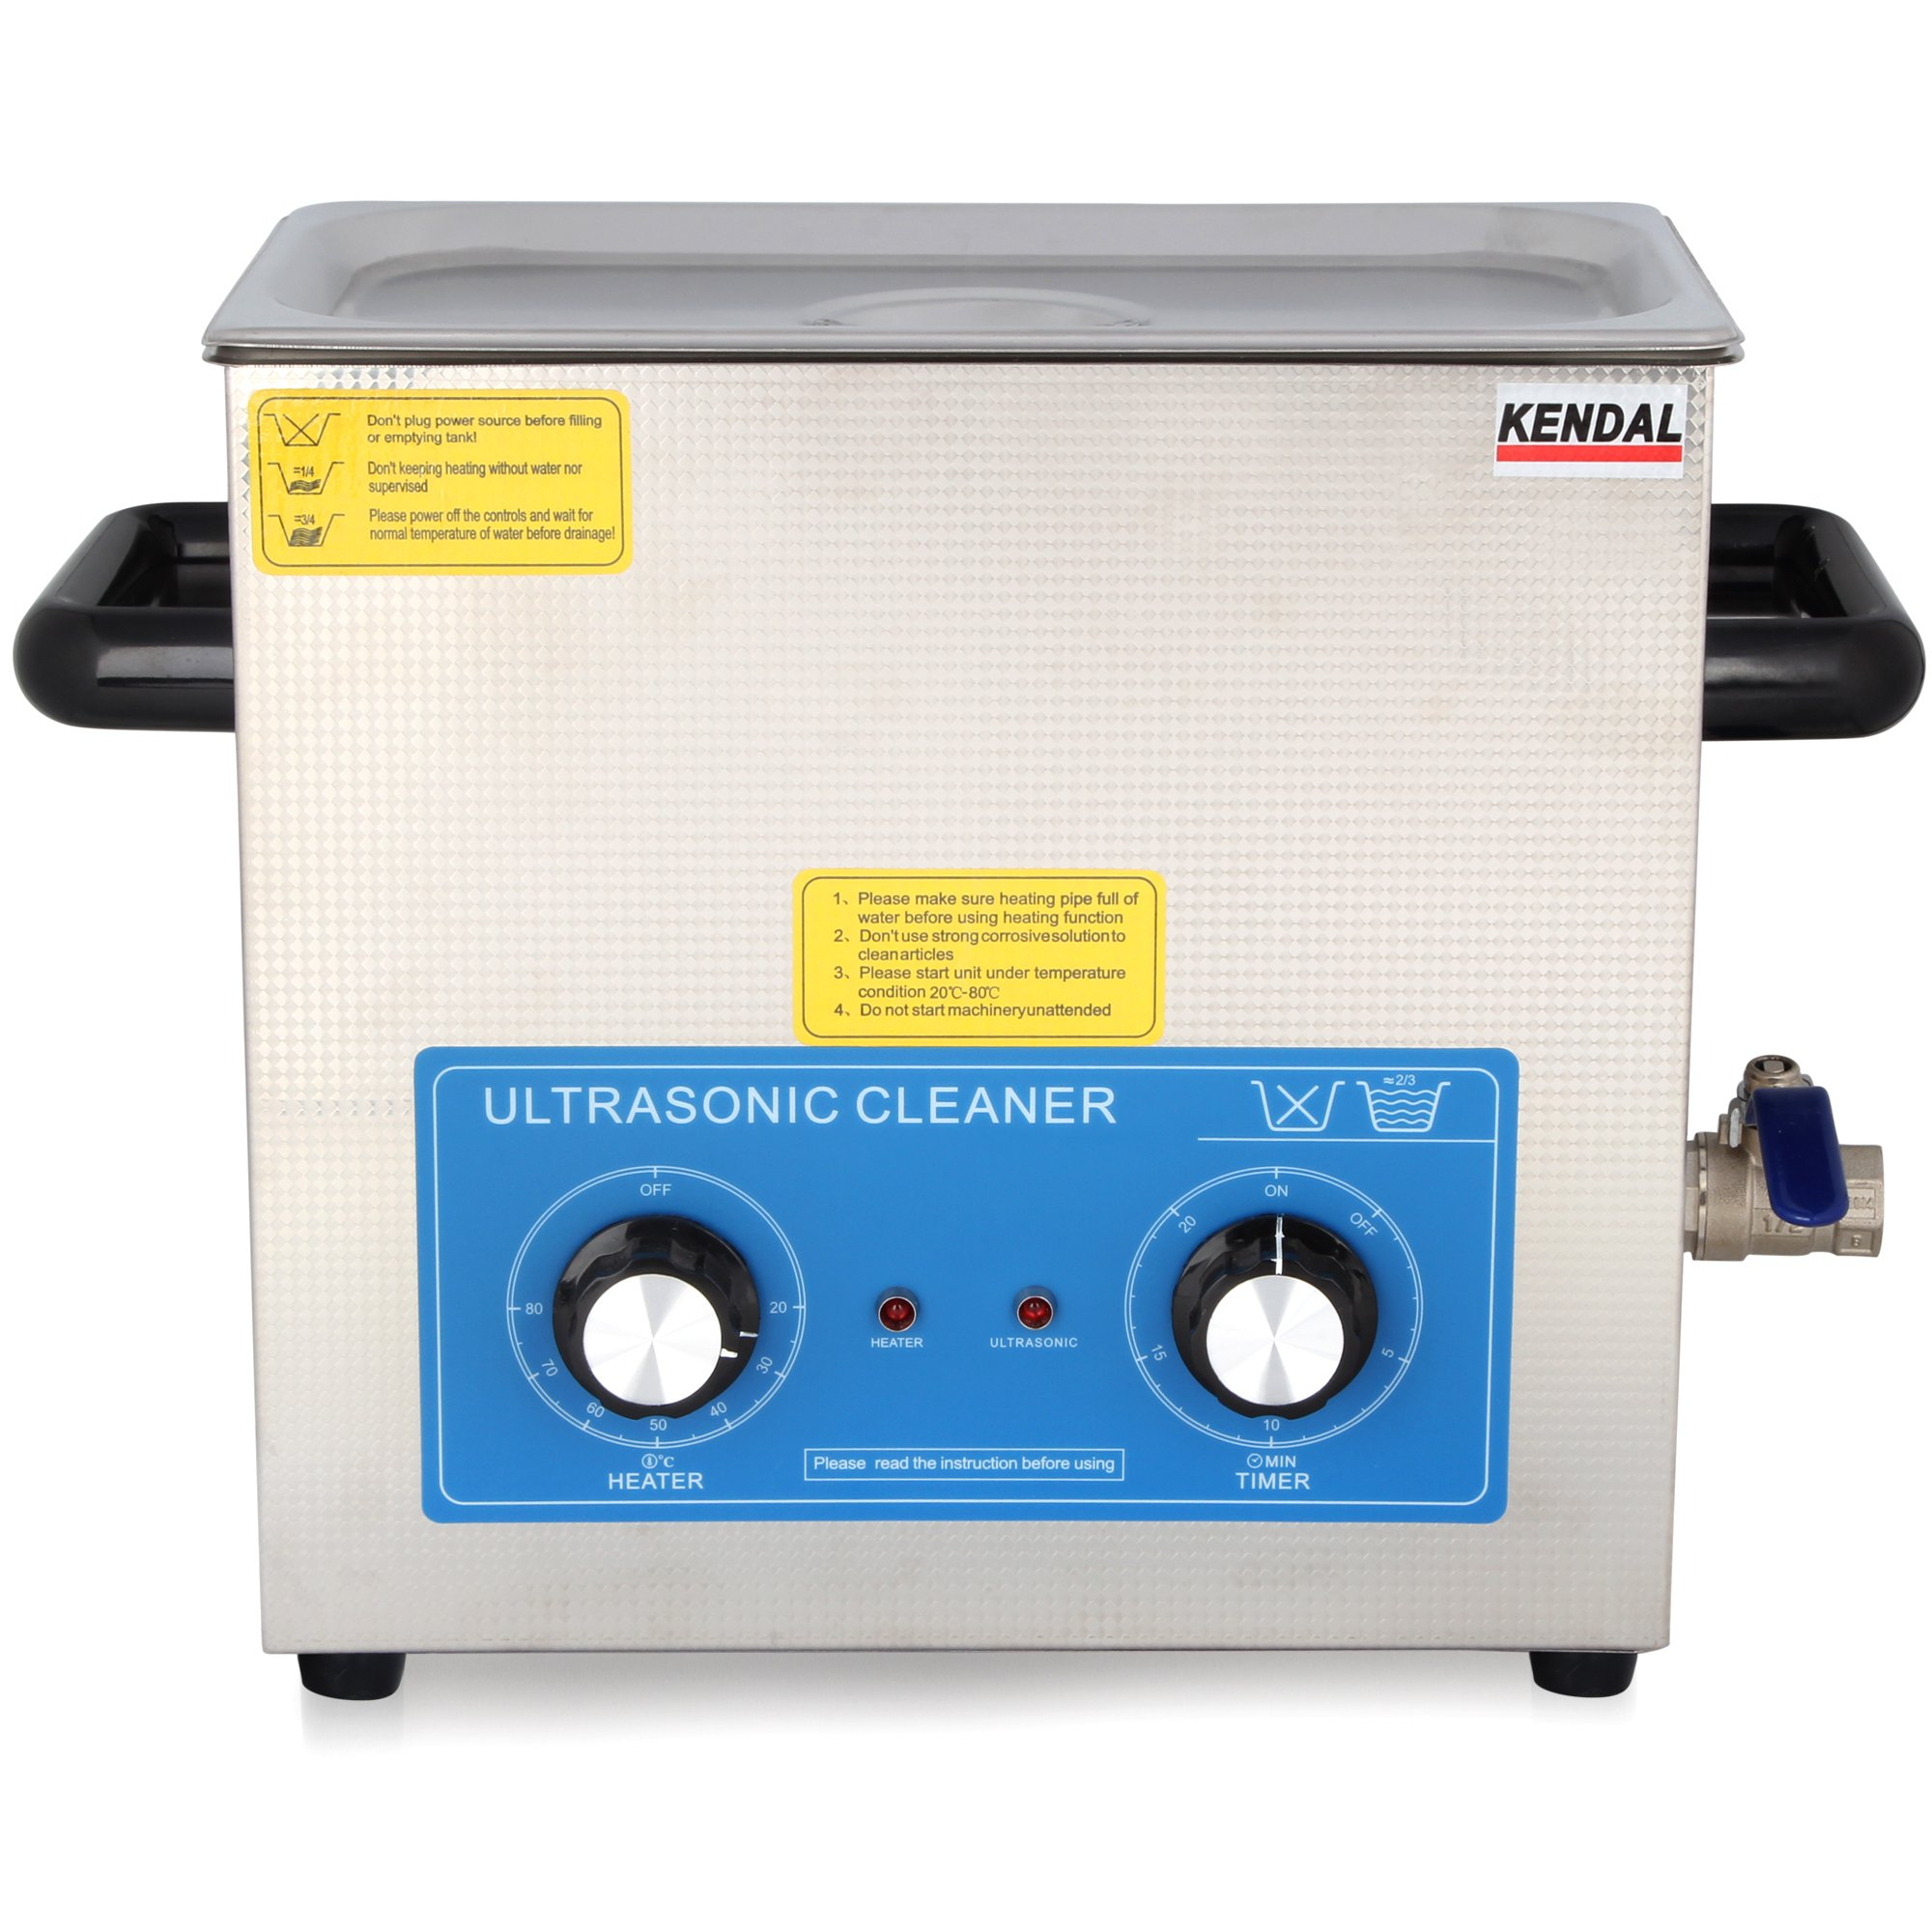 Kendal Commercial Grade 6 Liters 380 Watts HEATED ULTRASONIC CLEANER HB-36MHT